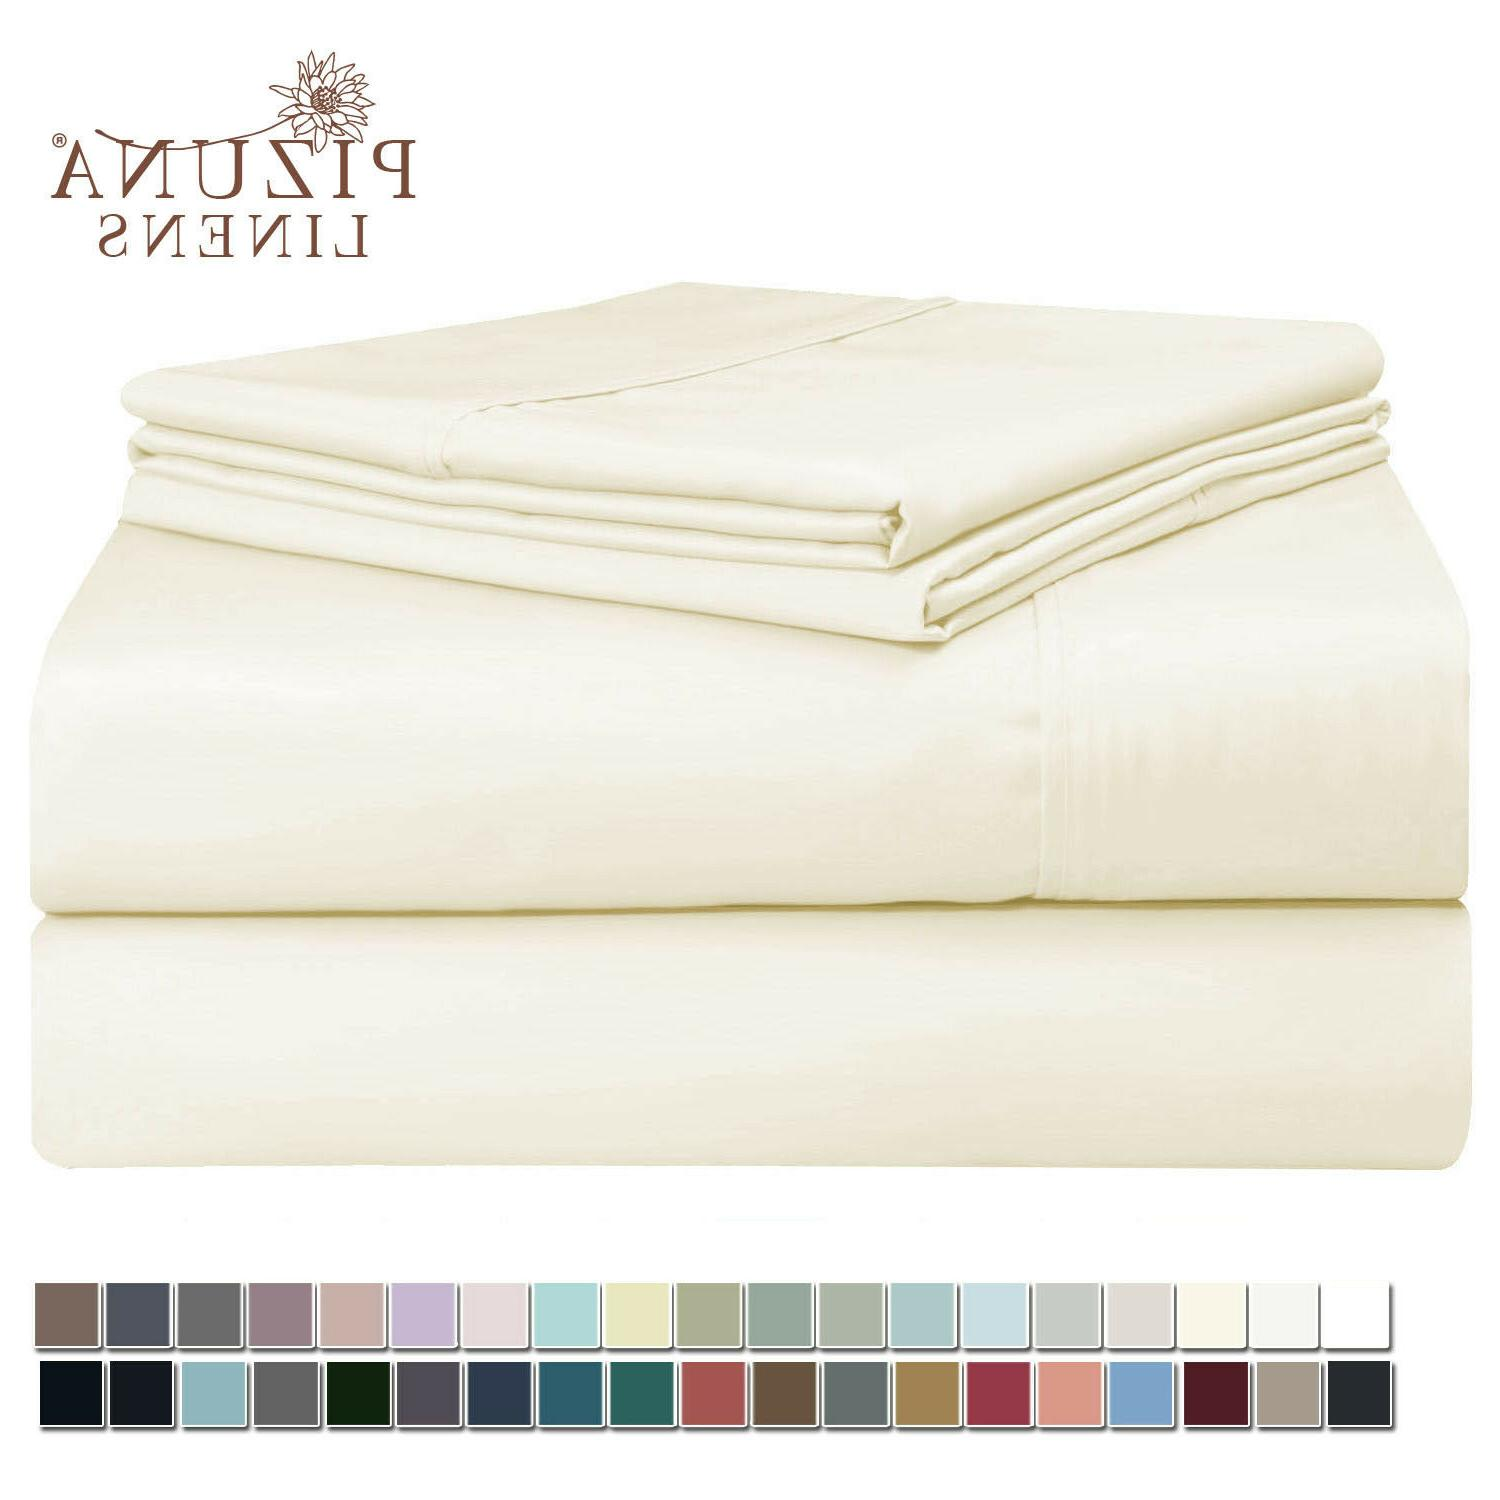 Wamsutta Dream Zone Deep Pocket, 1000 Thread Count Cotton, G